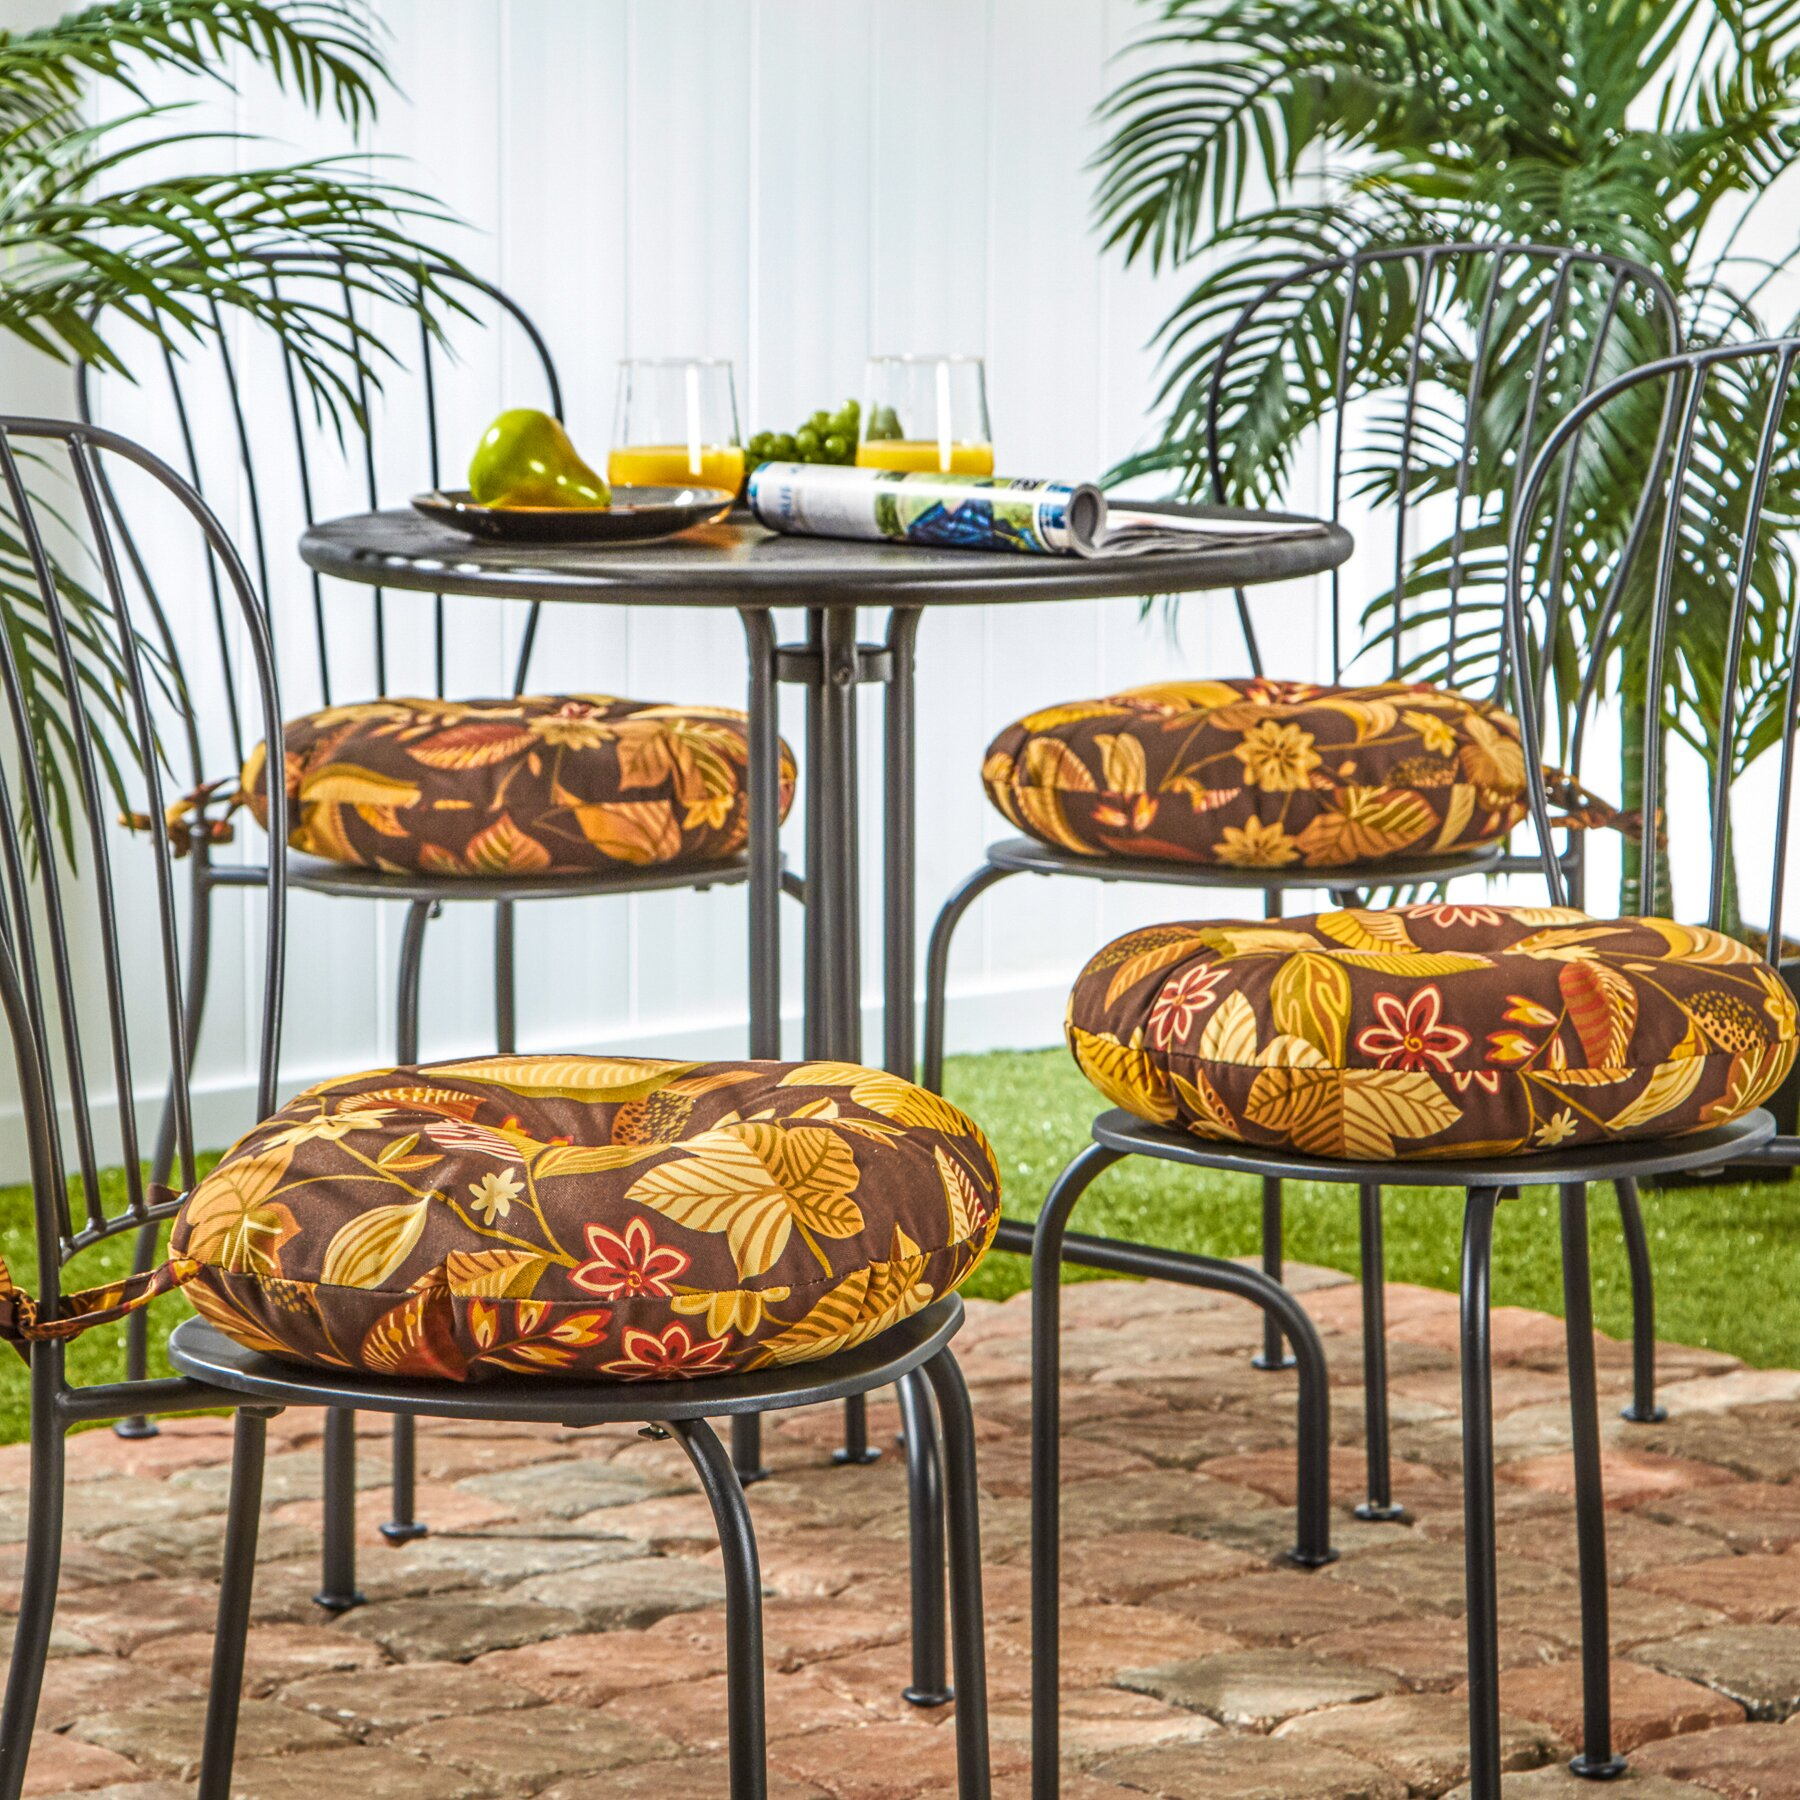 Charlton Home Outdoor Round Bistro Dining Chair Cushion Reviews Wayfair